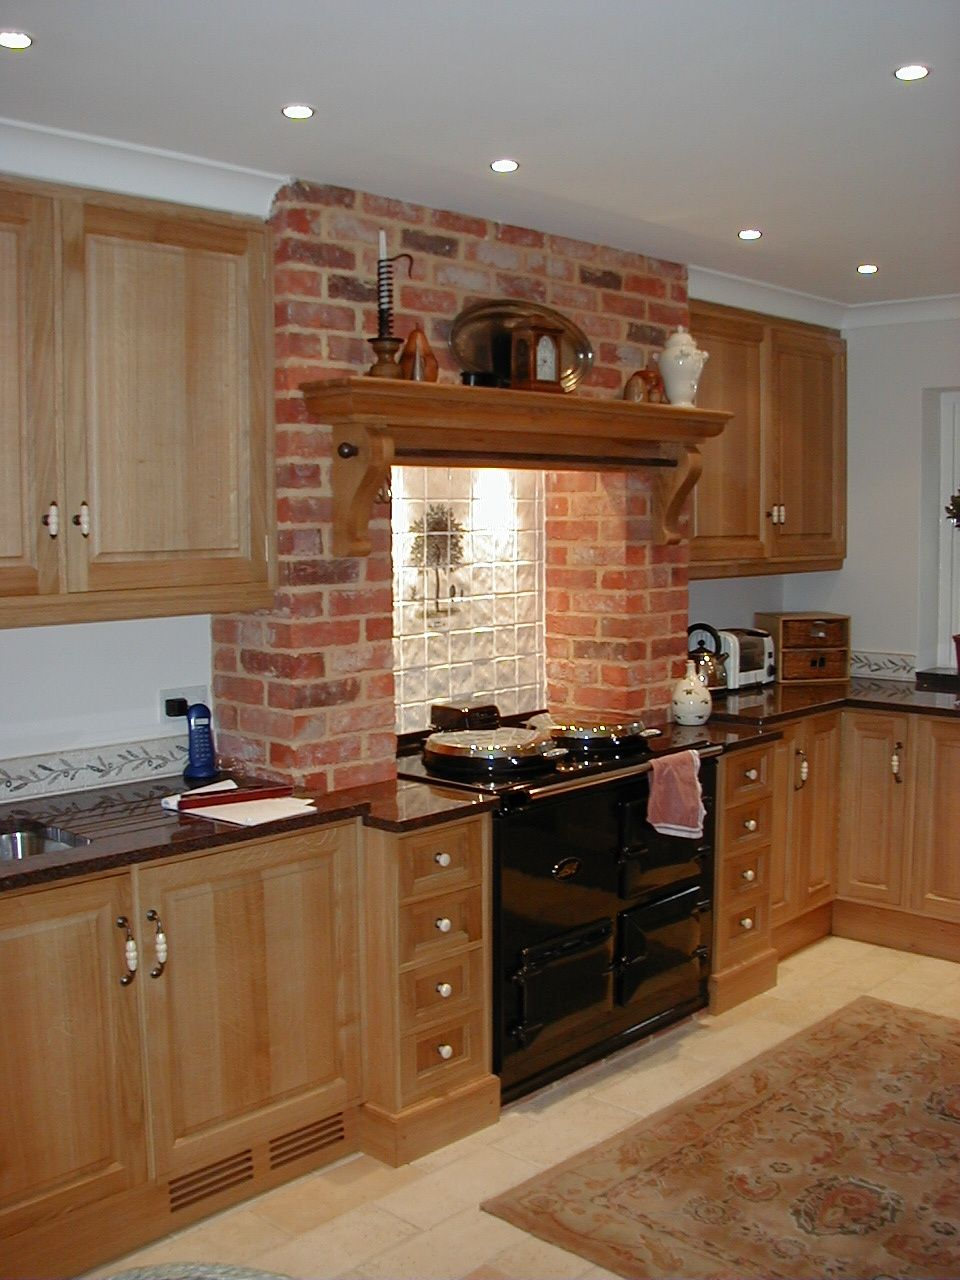 A Quintessential Country Kitchen. Oak Cabinets With A Large Mantel Over The Range  Cooker.